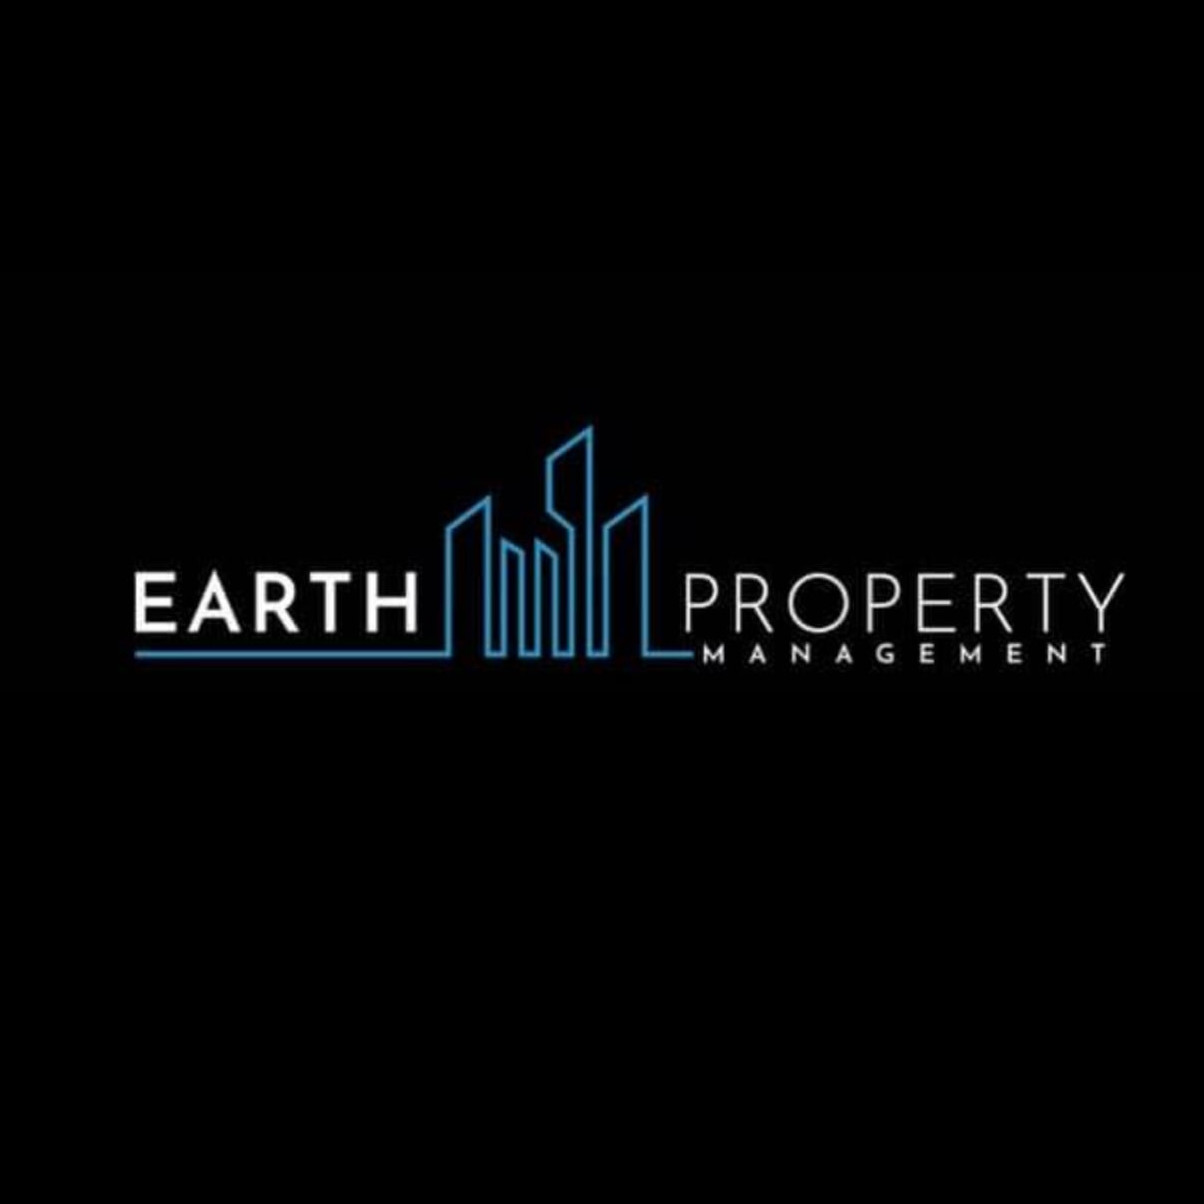 Earth Property Management